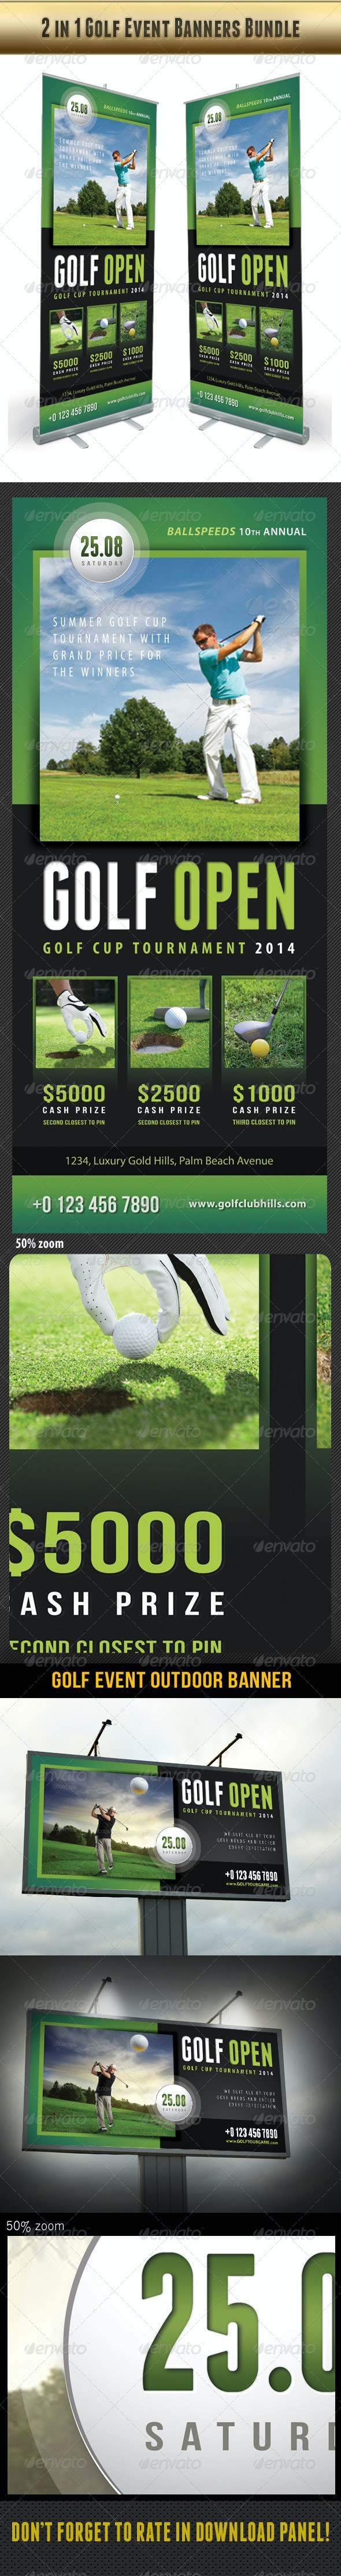 2 in 1 Golf Event Banners Bundle 02 - Signage Print Templates